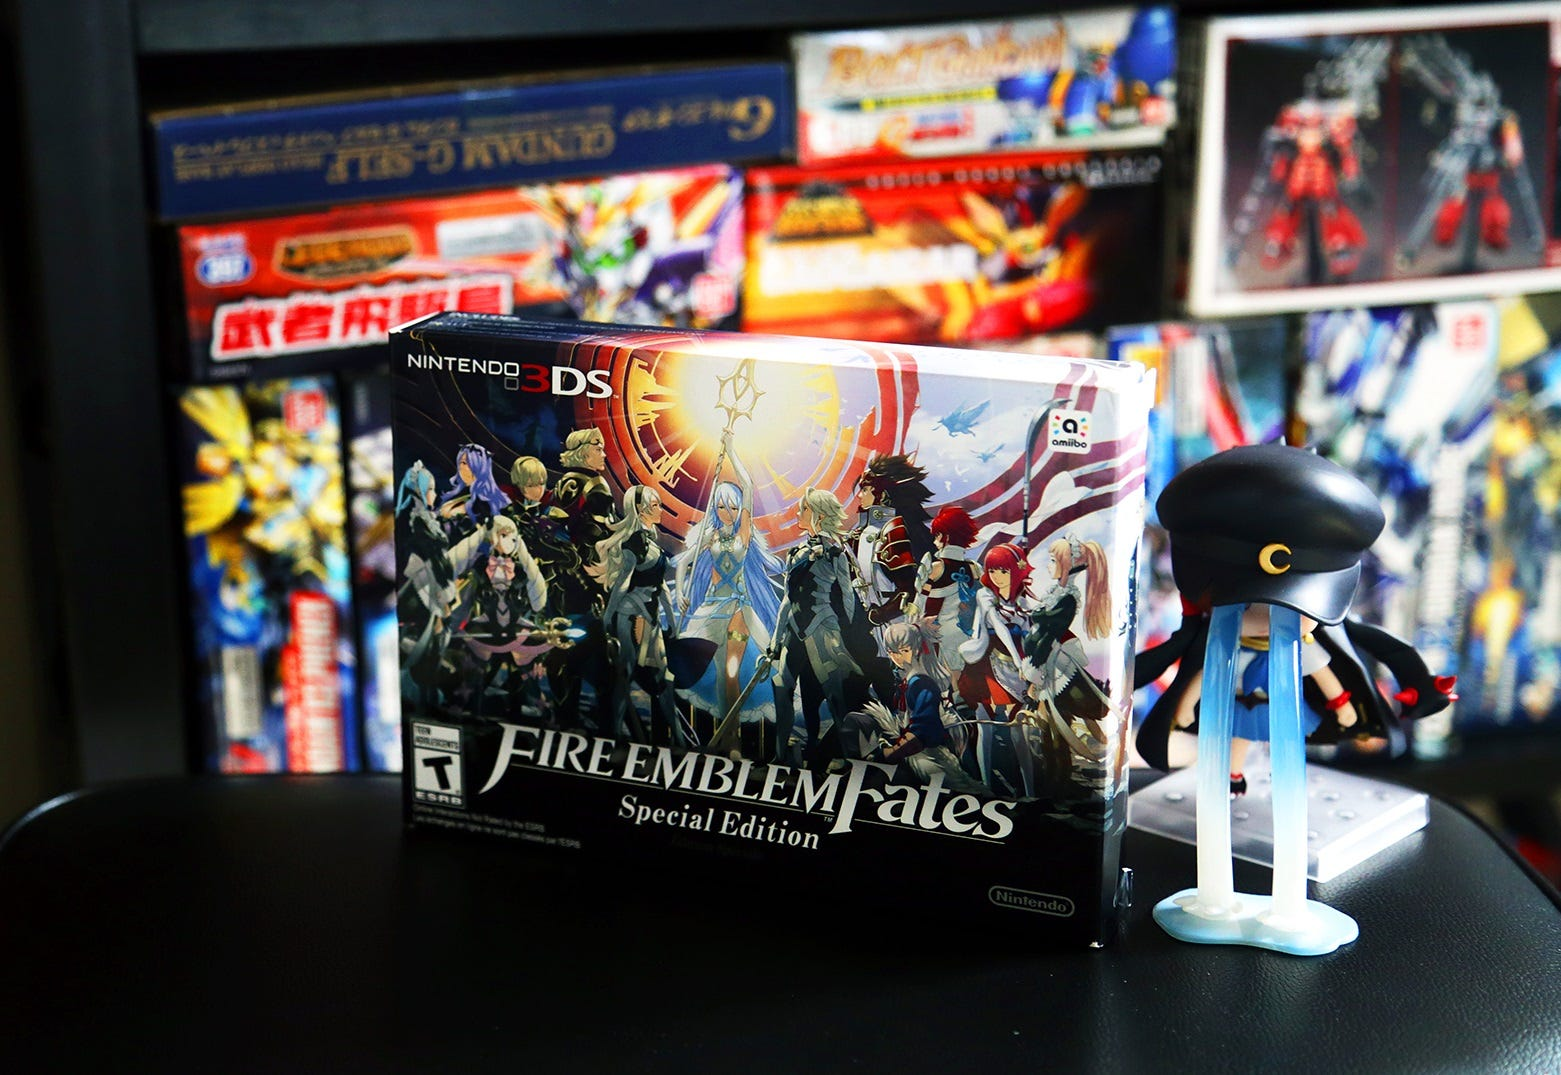 Watch video: Fire Emblem Fates Special Edition Unboxing   Technobubble